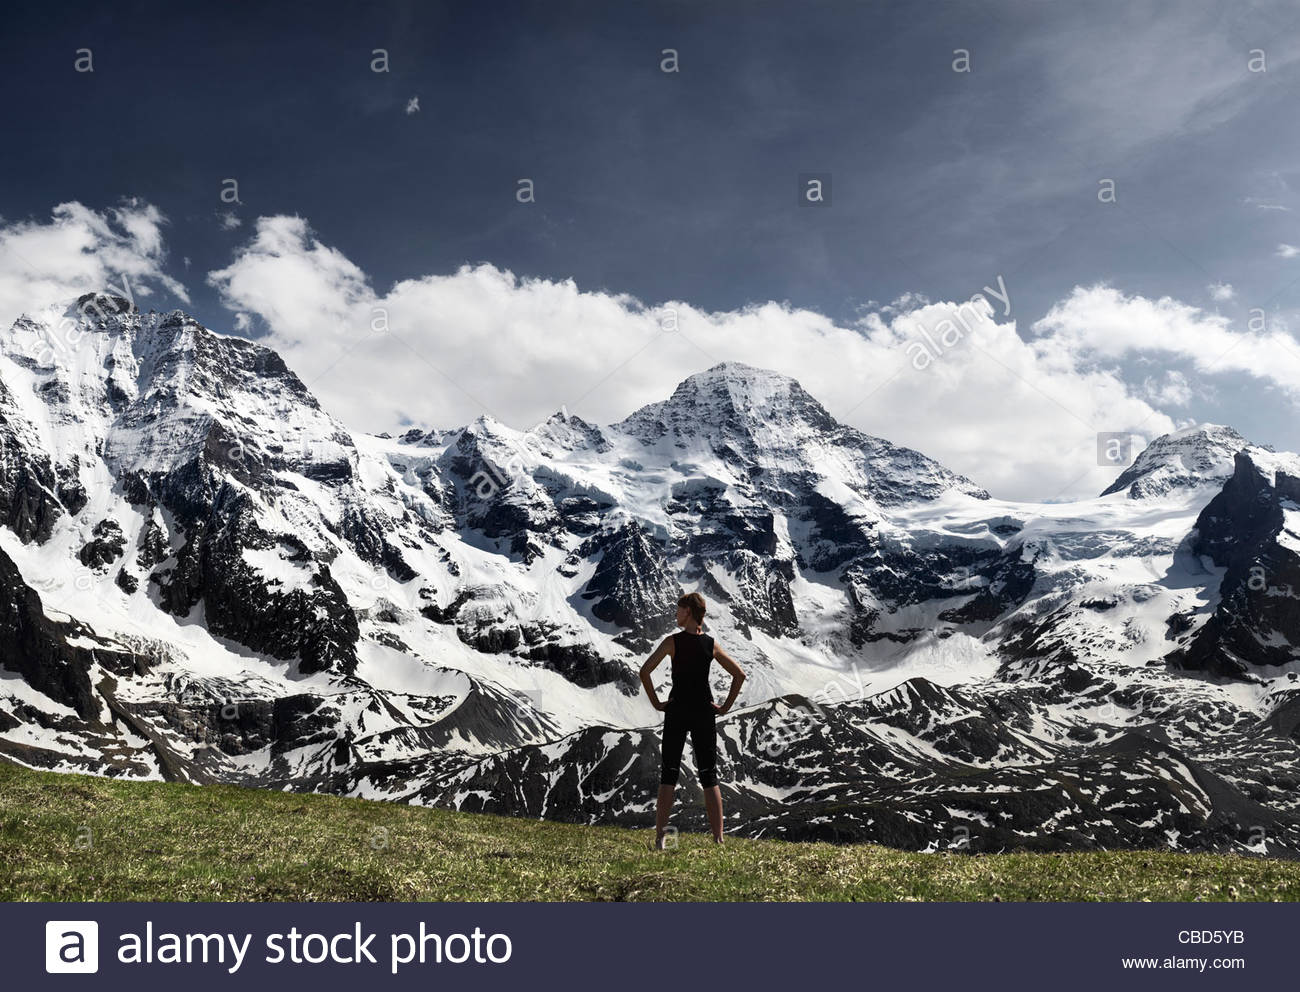 Woman overlooking glacial landscape - Stock Image